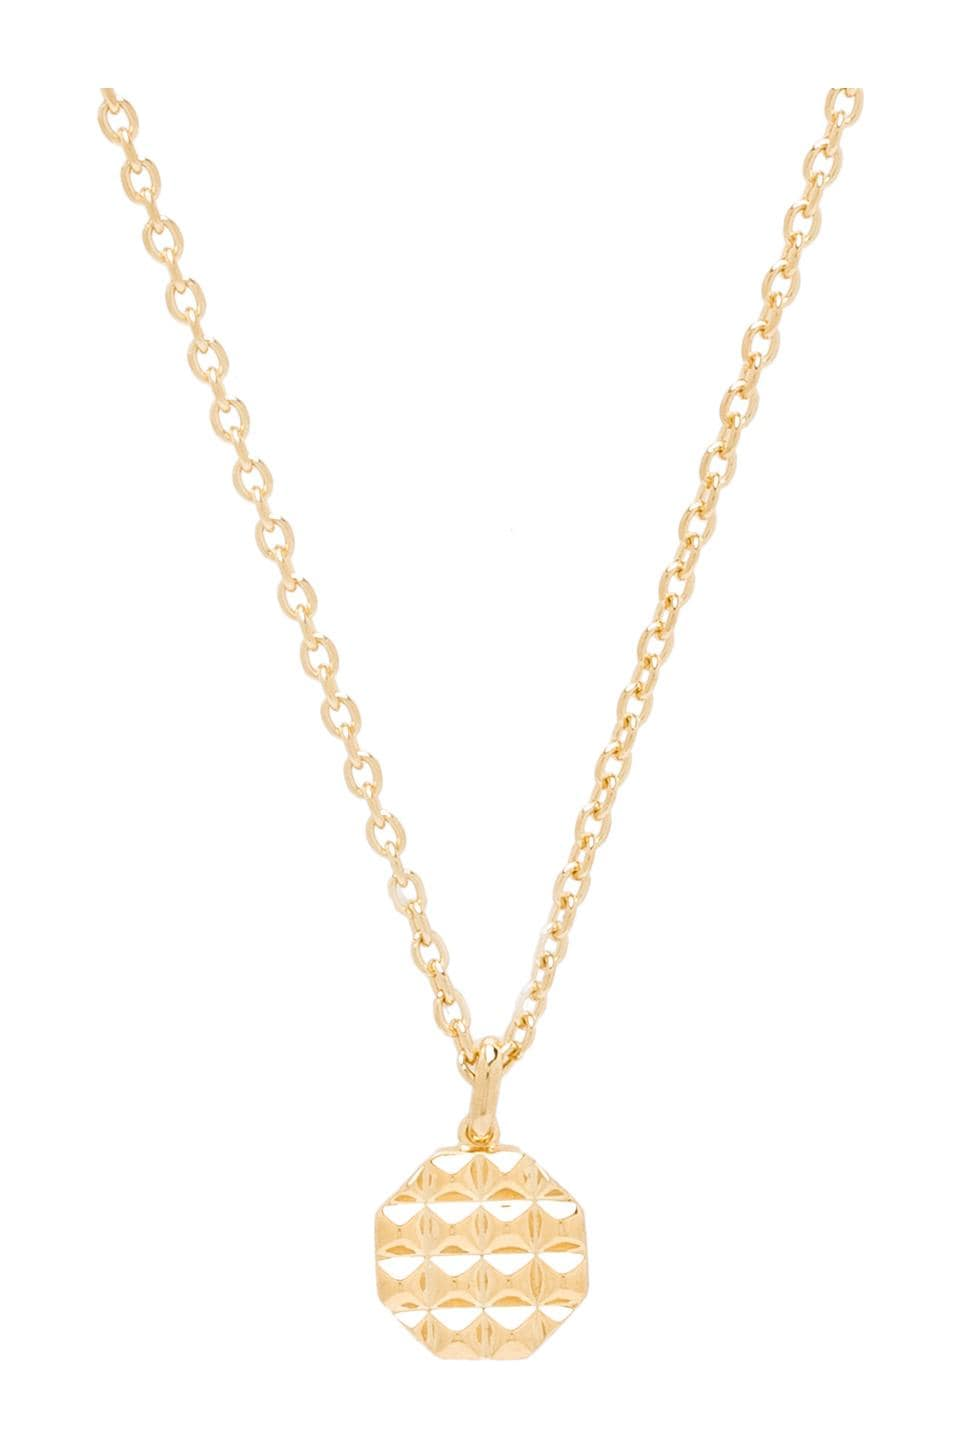 Elizabeth and James Divi Pendant Necklace in Gold